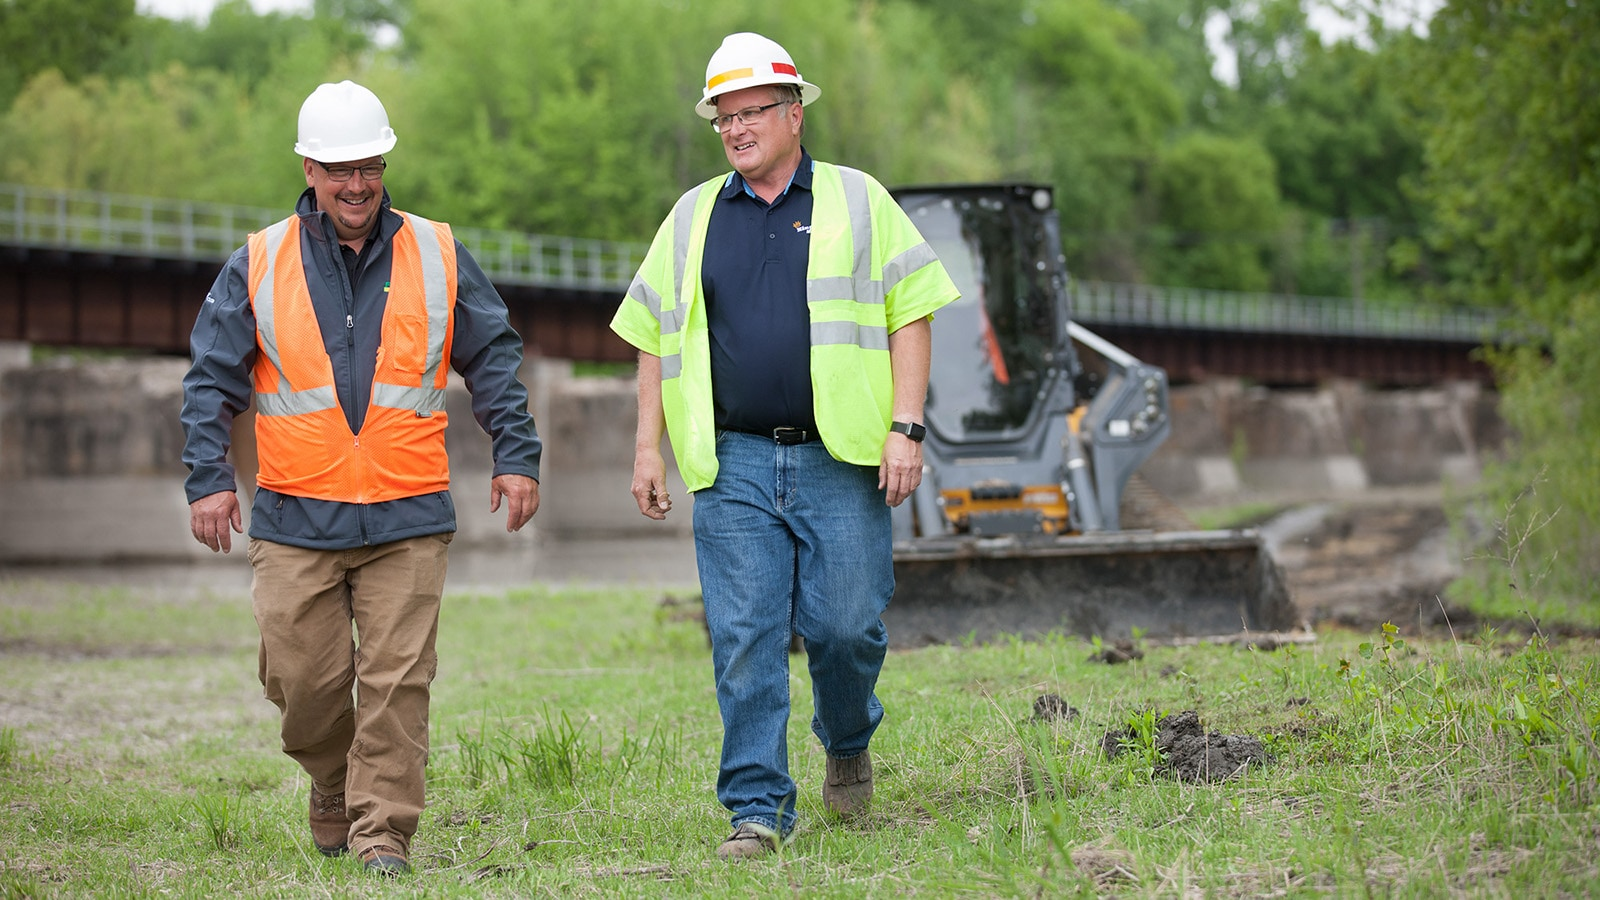 Bruce Speirs and Bill King walk through grass in front of a bridge and skid steer.